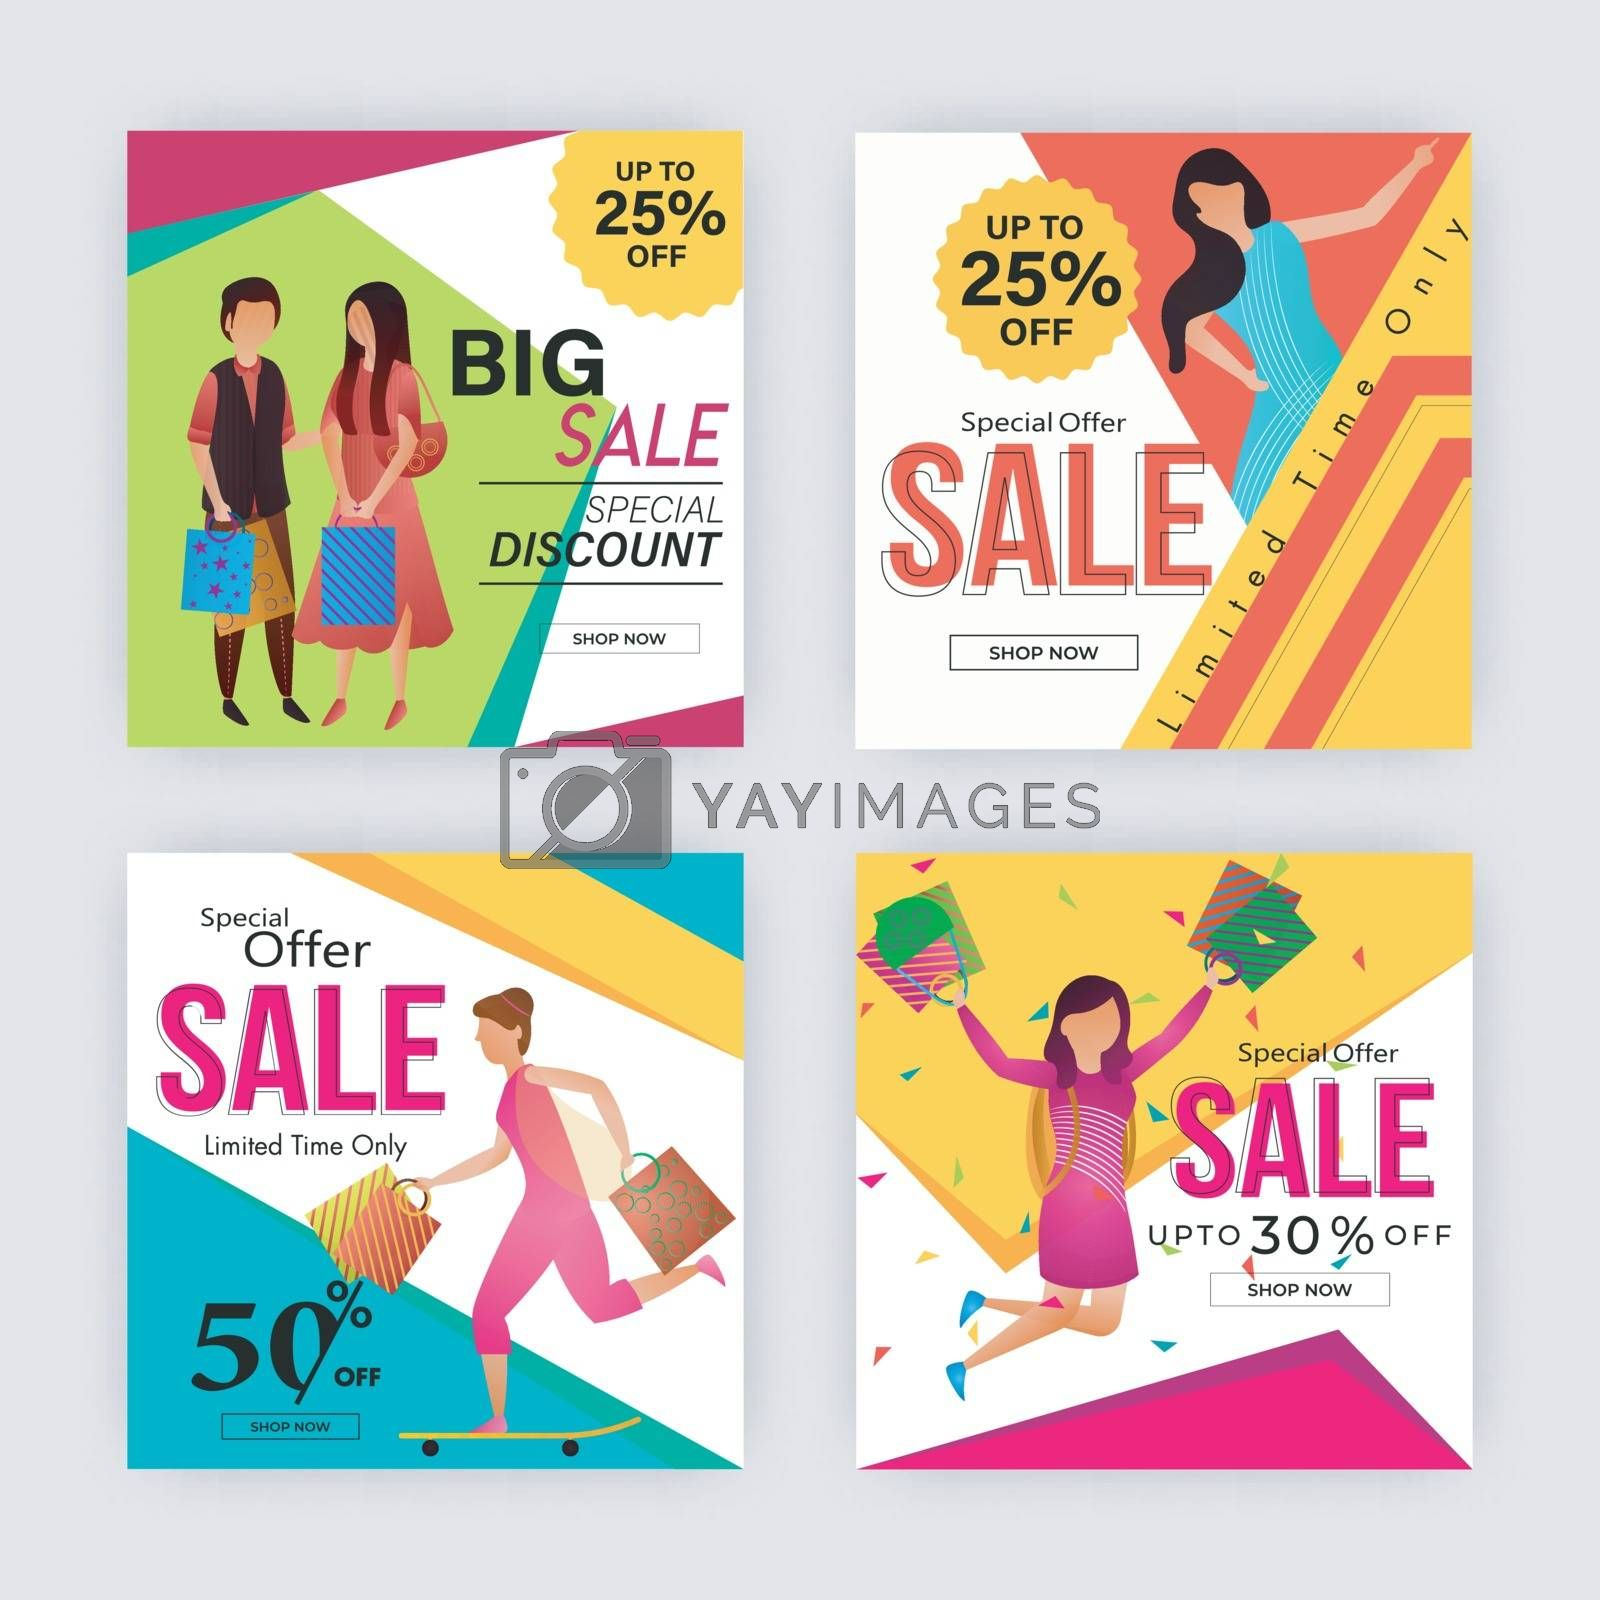 Royalty free image of Big Sale template or poster set with different discount offers f by aispl